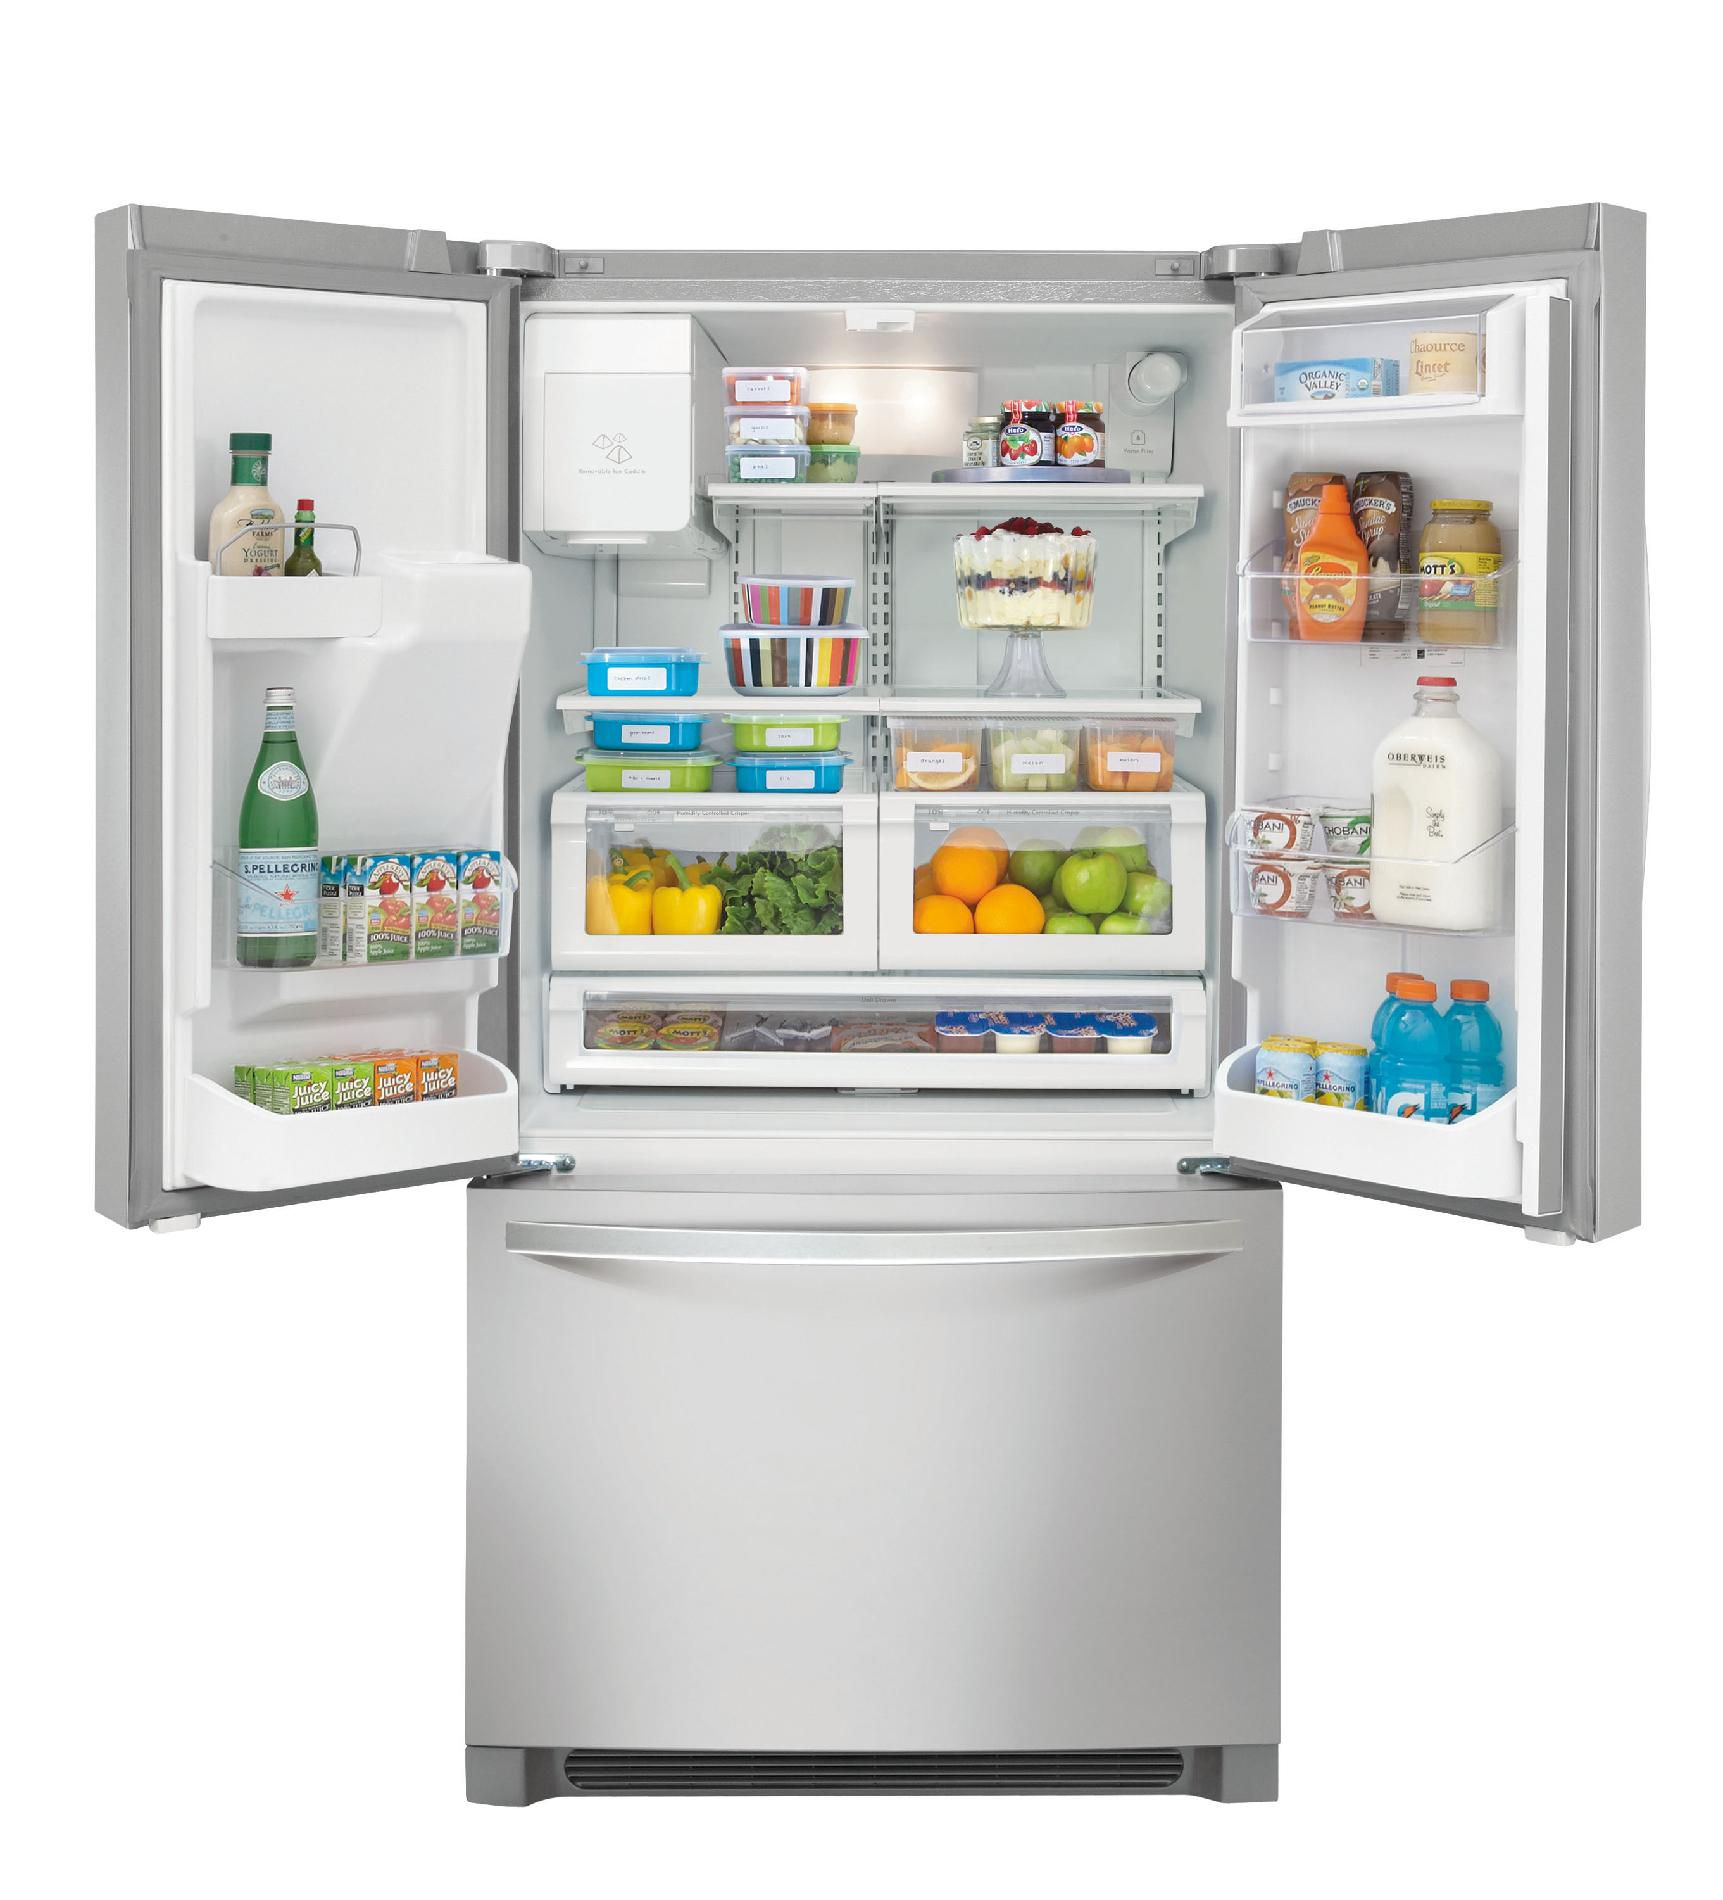 Kenmore 26.7 cu. ft. French Door Bottom-Freezer Refrigerator - Stainless Steel